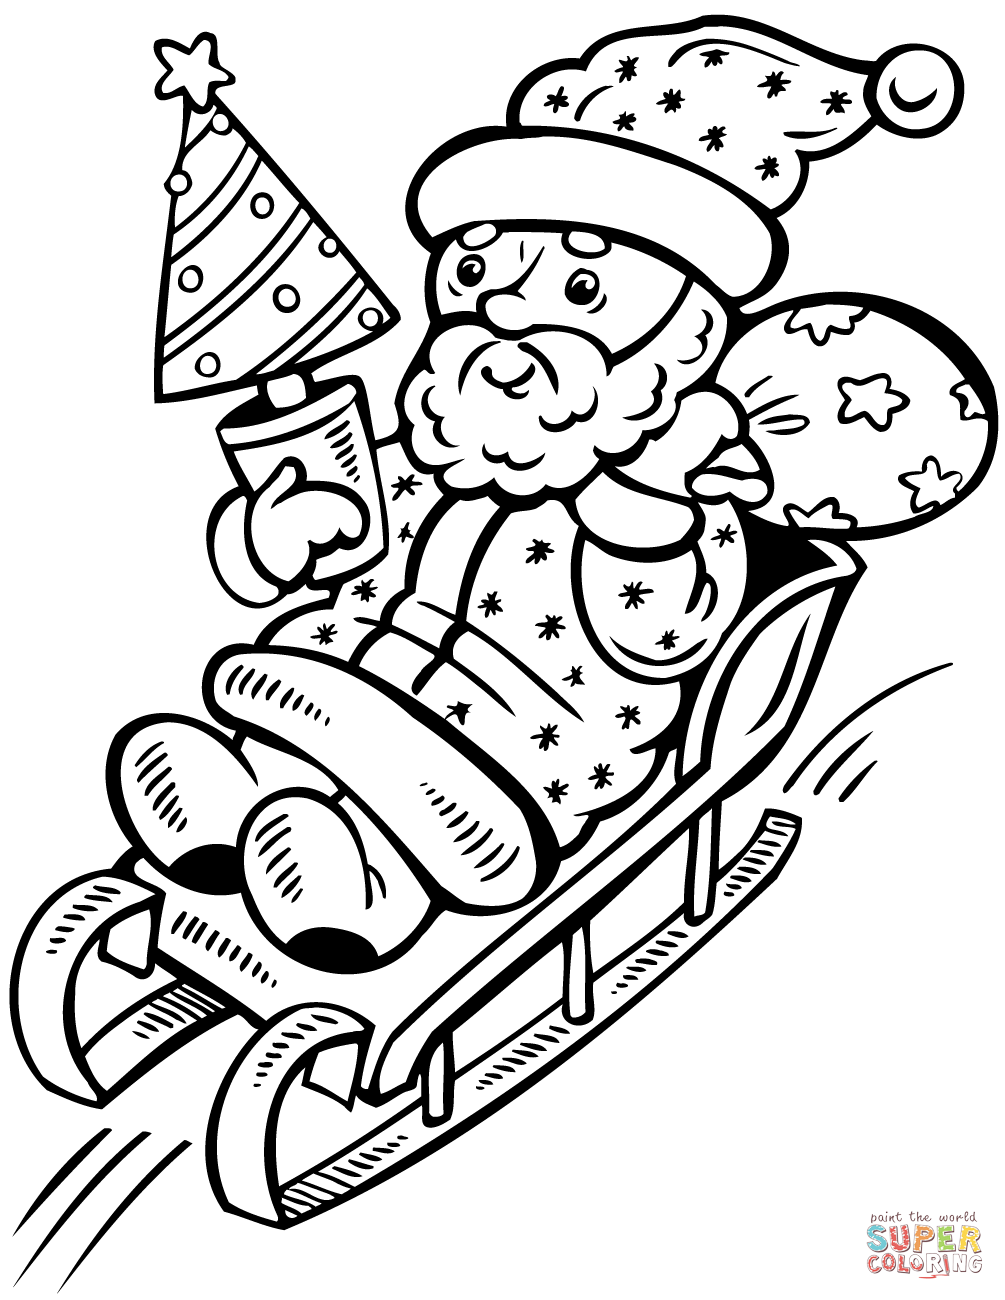 Santa Claus Coloring Pages Online With On Sleigh Christmas Tree Page Free